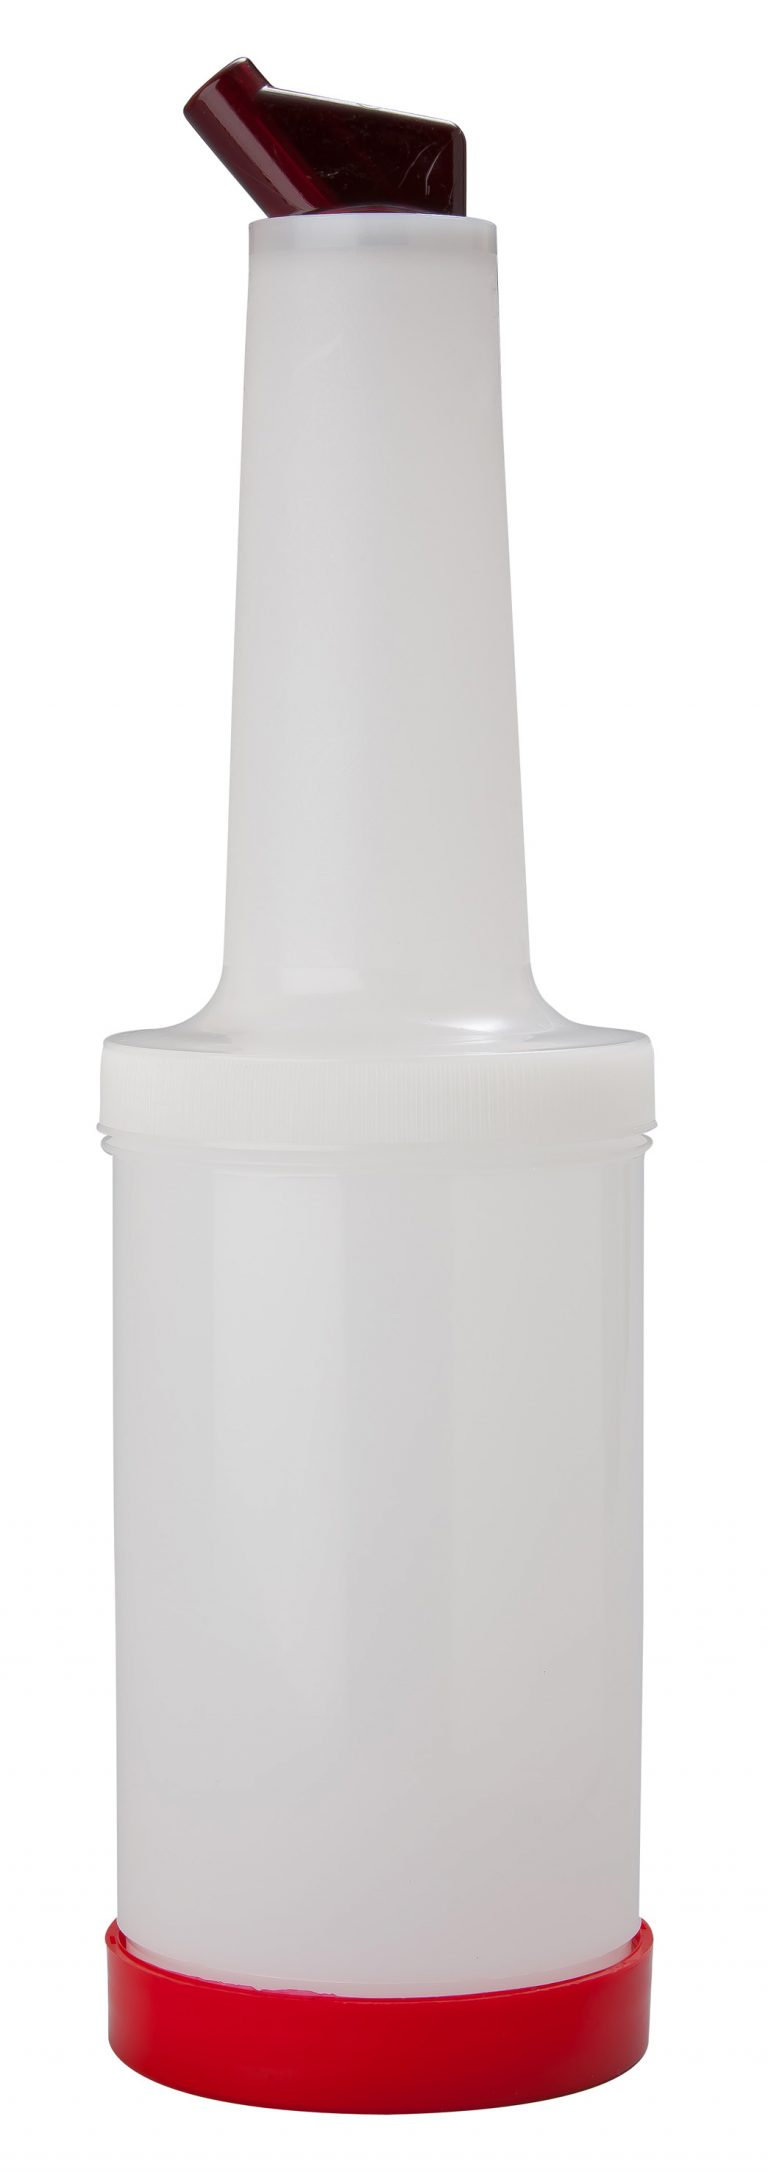 Save & Pour Bottle - Red